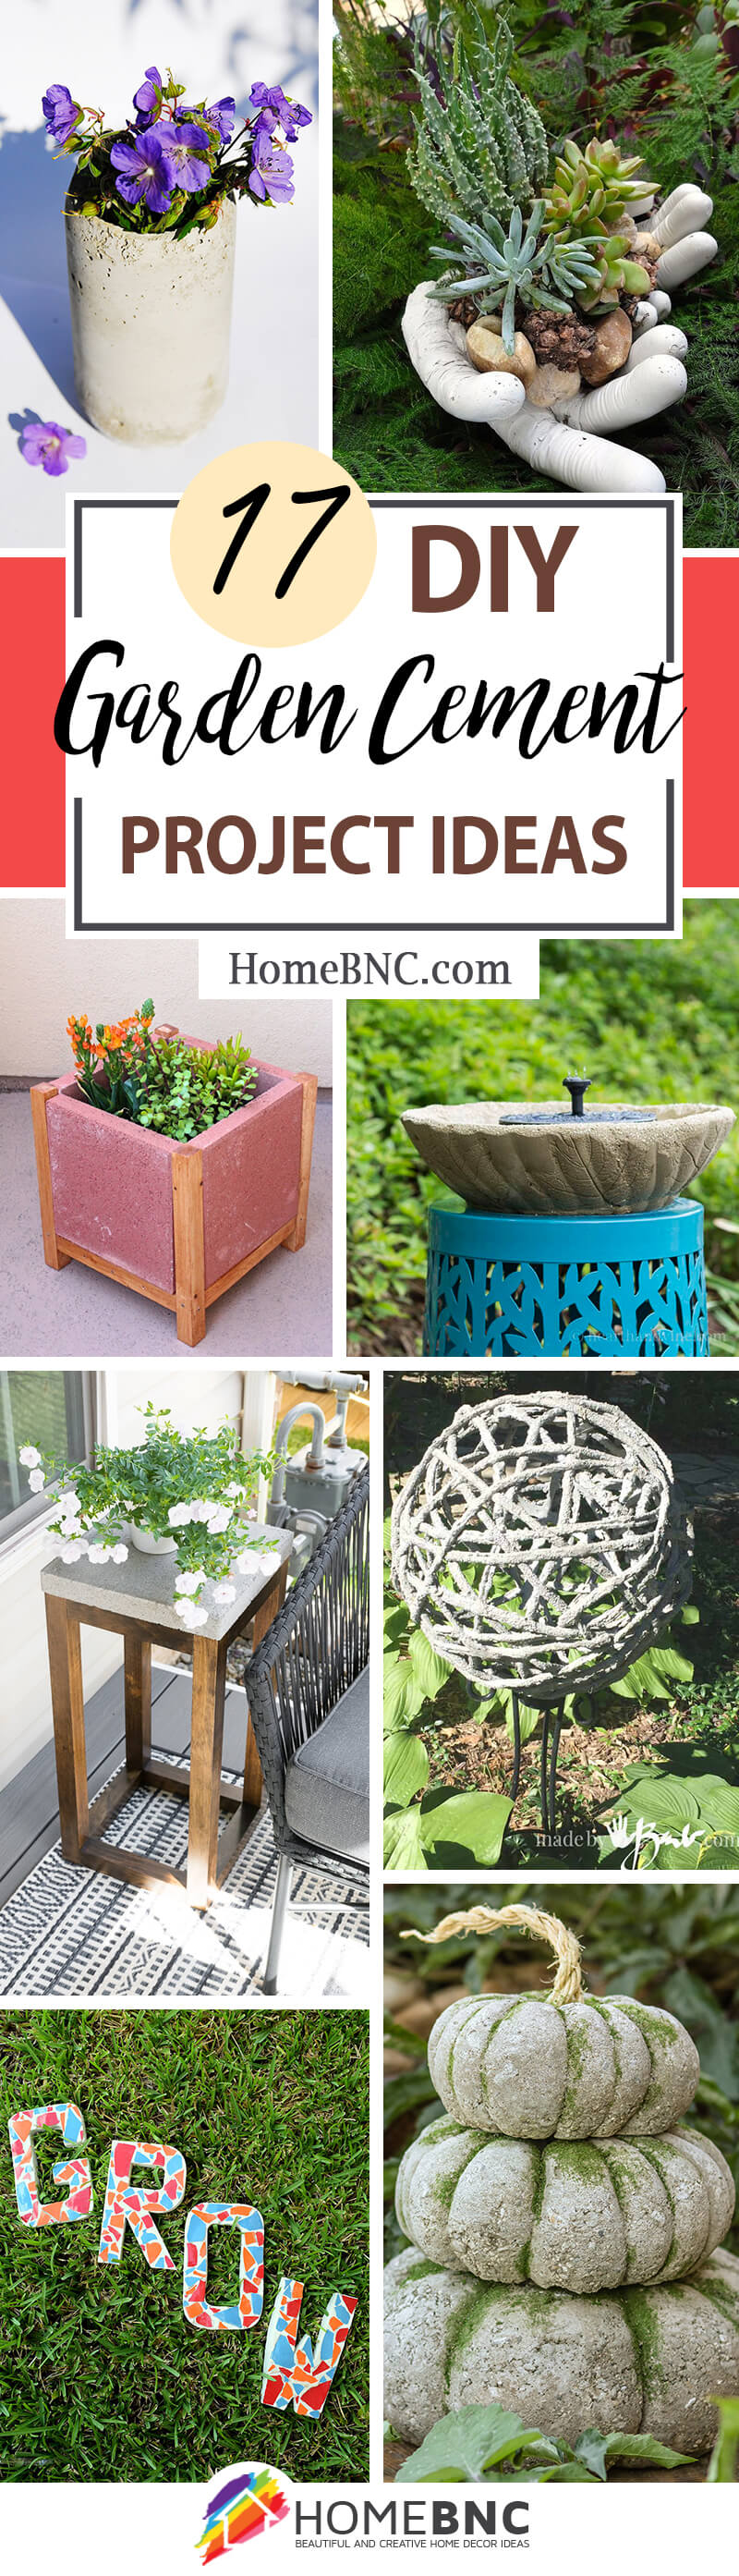 11 Easy DIY Garden Cement Project Ideas on a Budget for 11